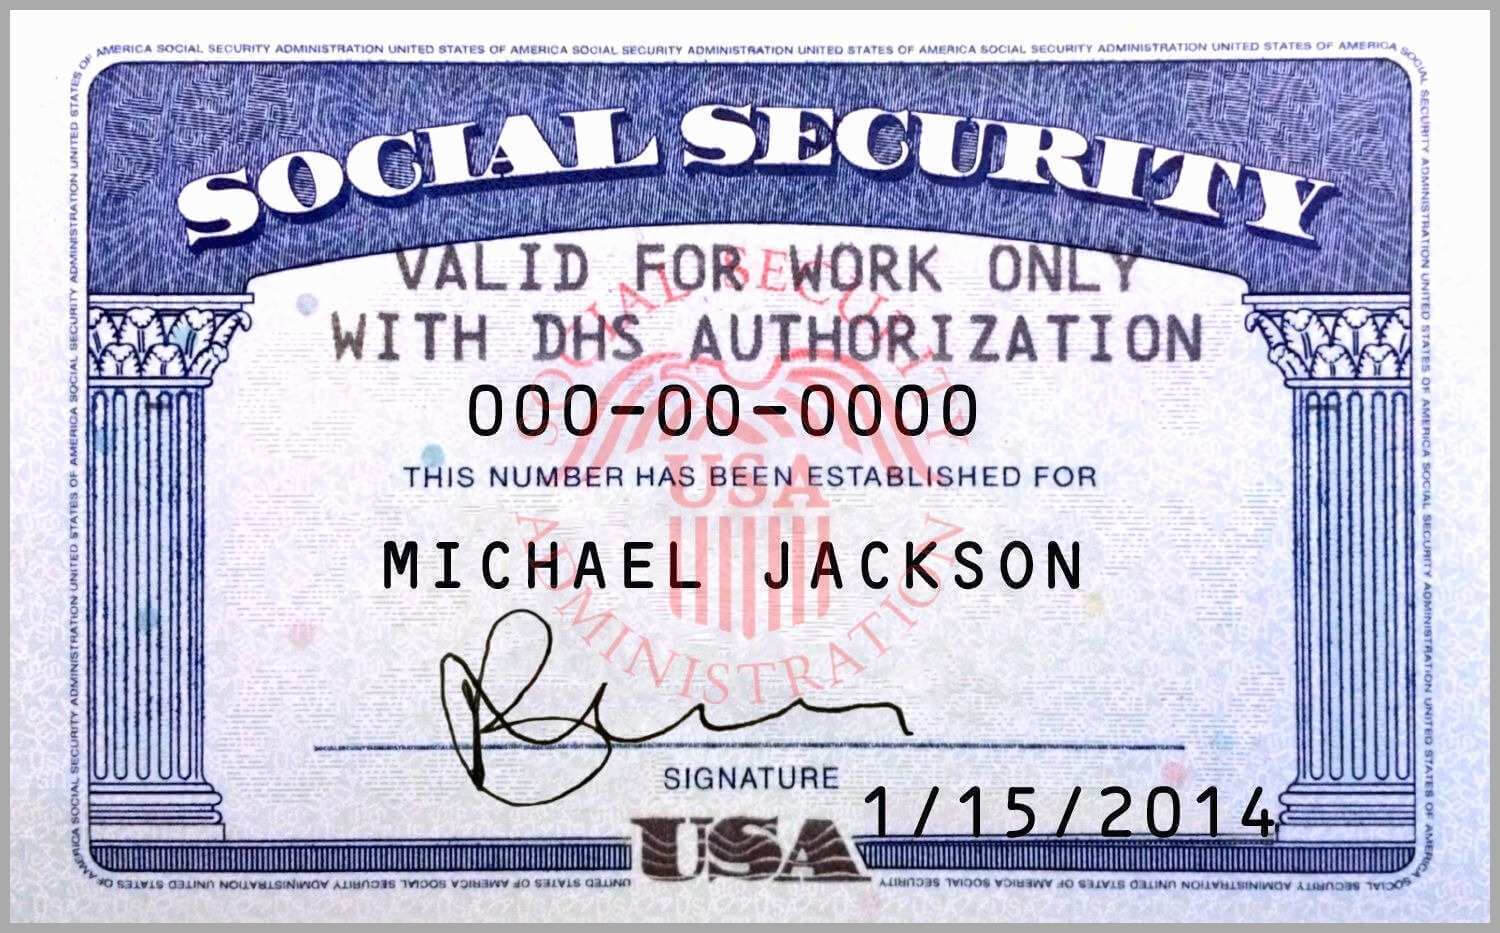 10 Blank Social Security Card Template | Proposal Sample inside Social Security Card Template Pdf